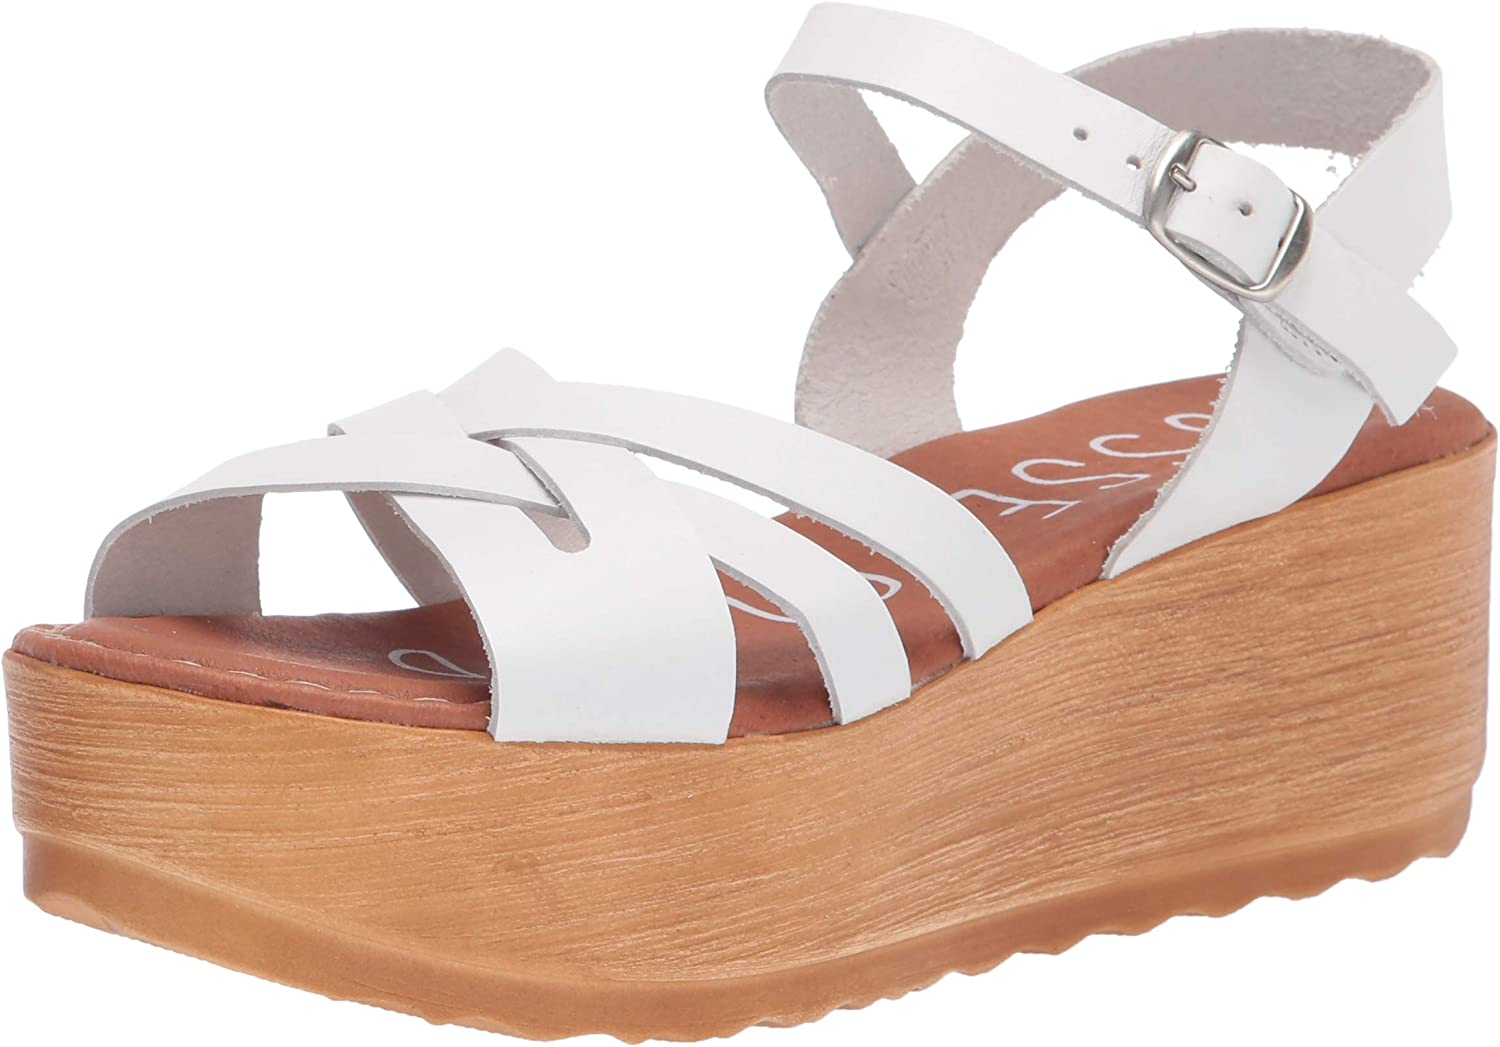 Department store Musse New product type Cloud Women's Sandal Wedge Strap